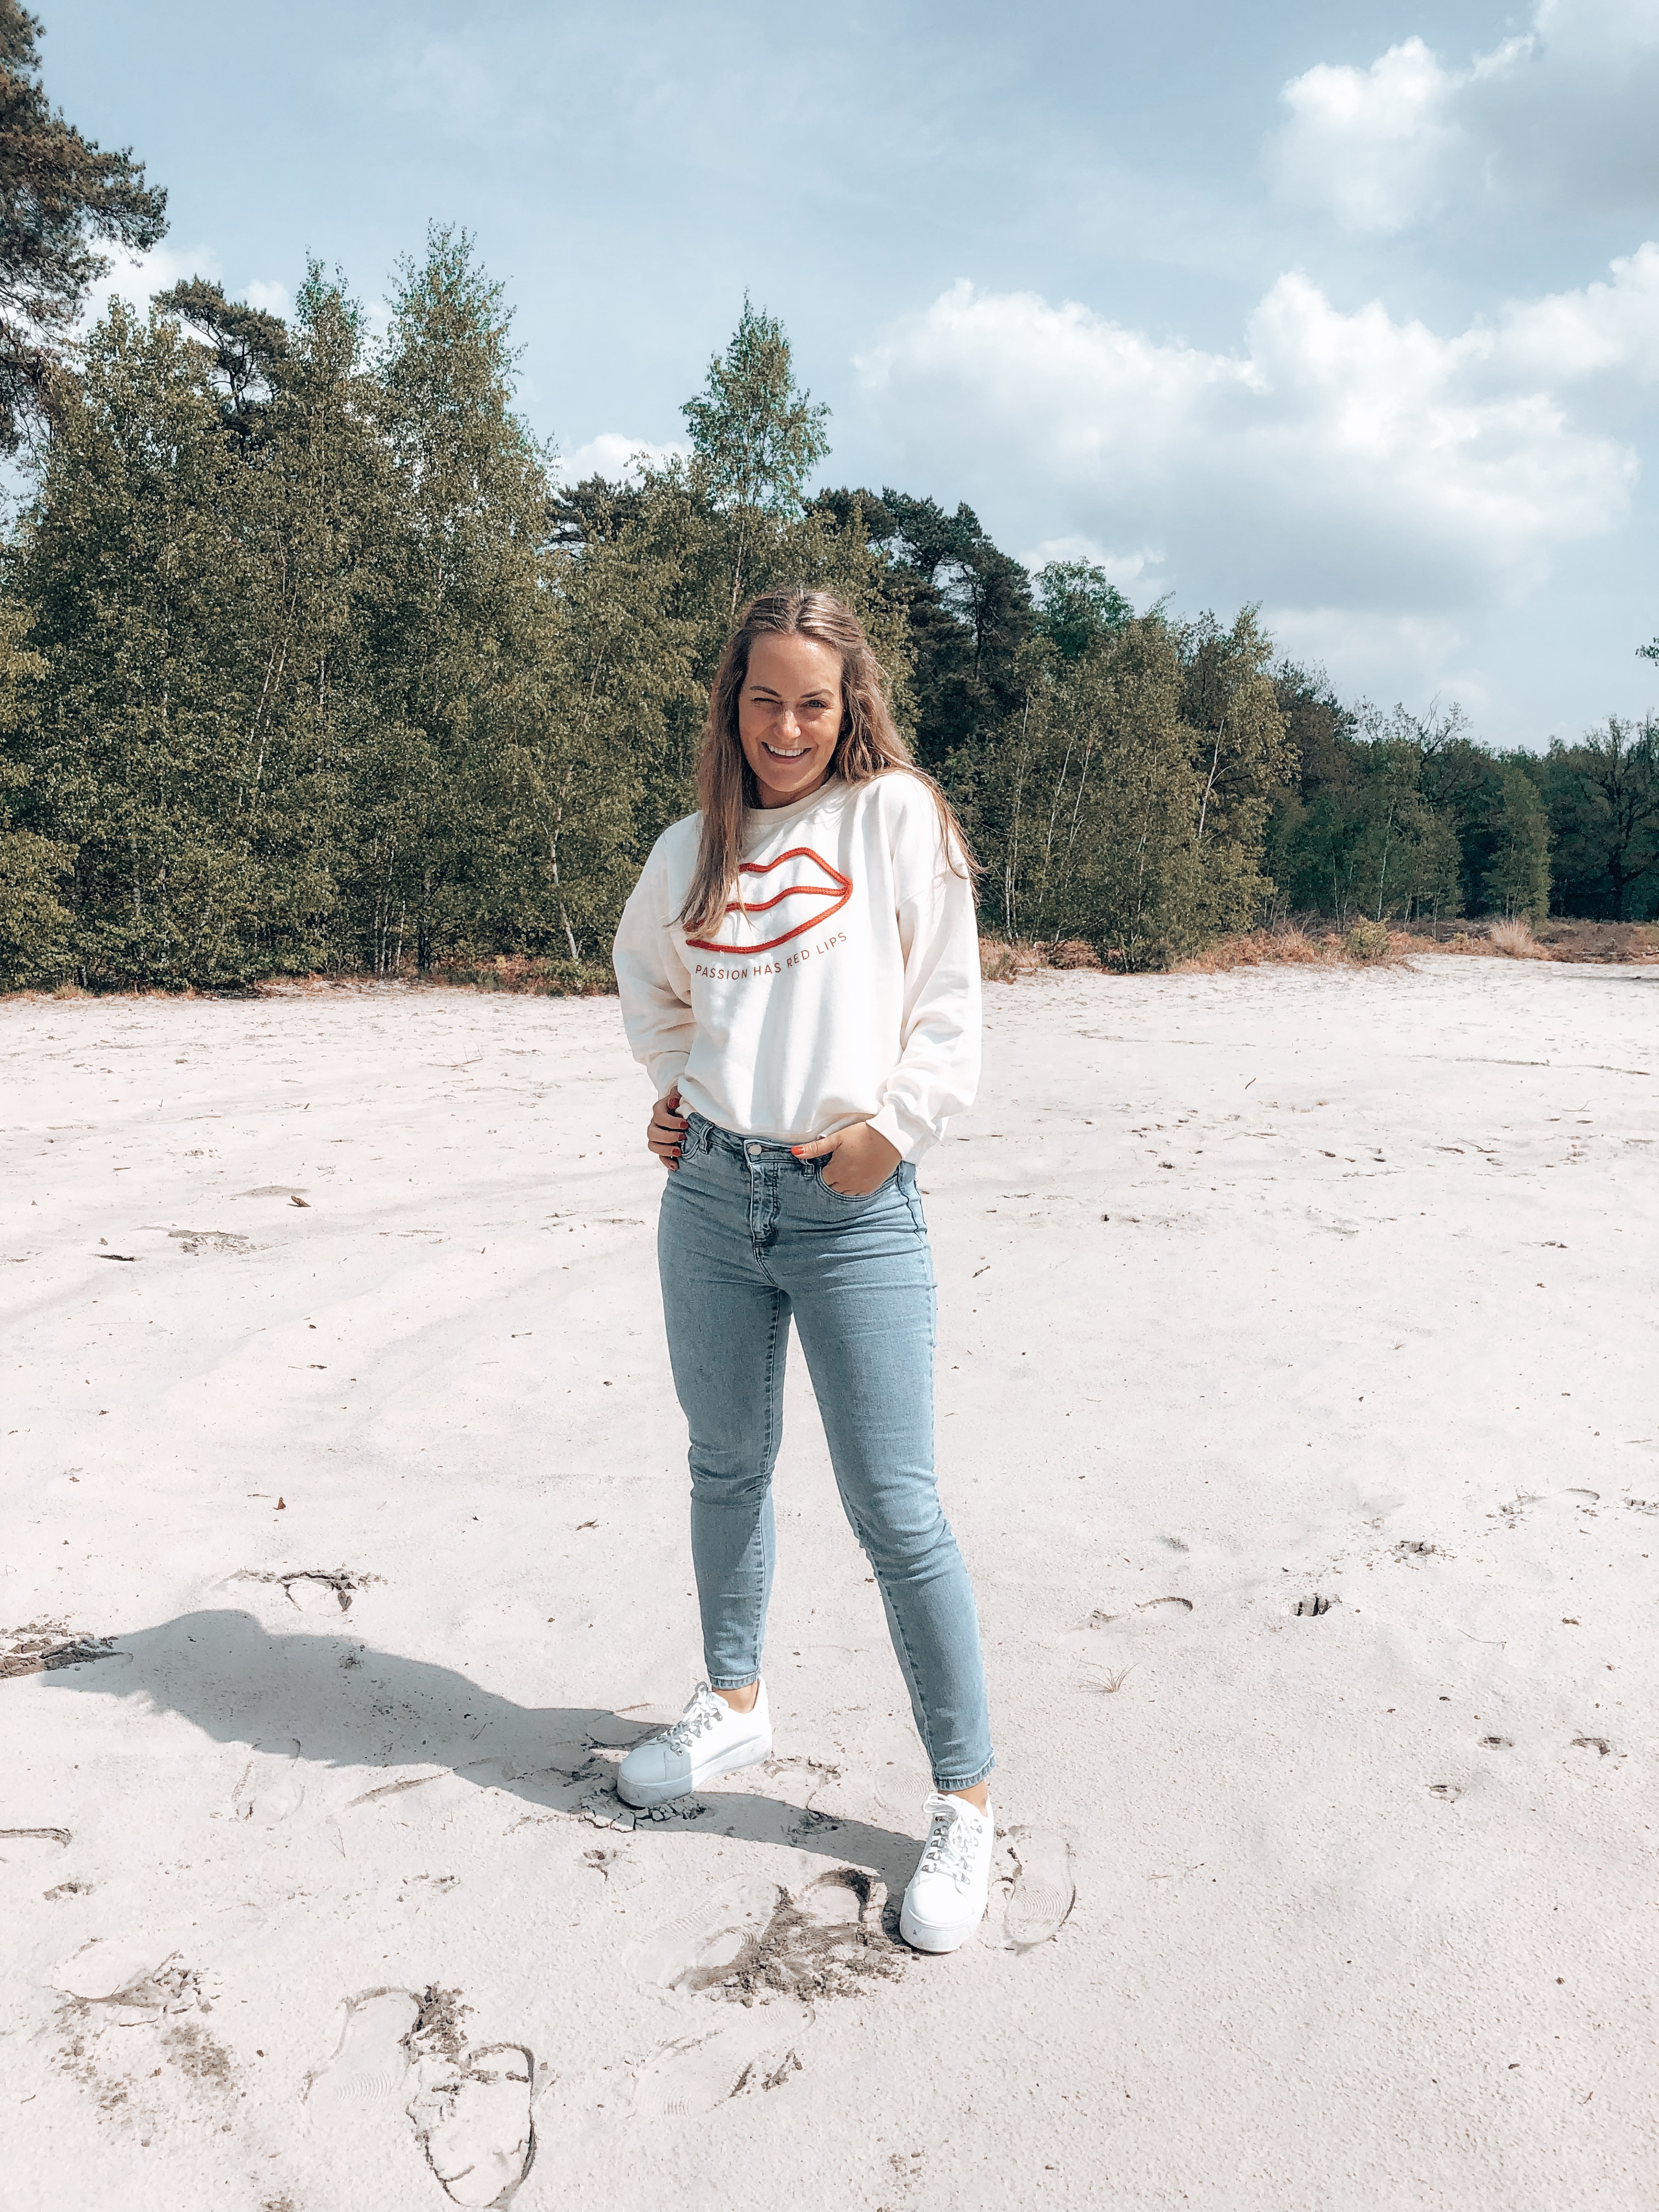 french disorder, sweater, dress, polodress, jurkje, zomer, outfit, trui, fotoshoot, ootd, blog, blogger, influencer, xmariekie